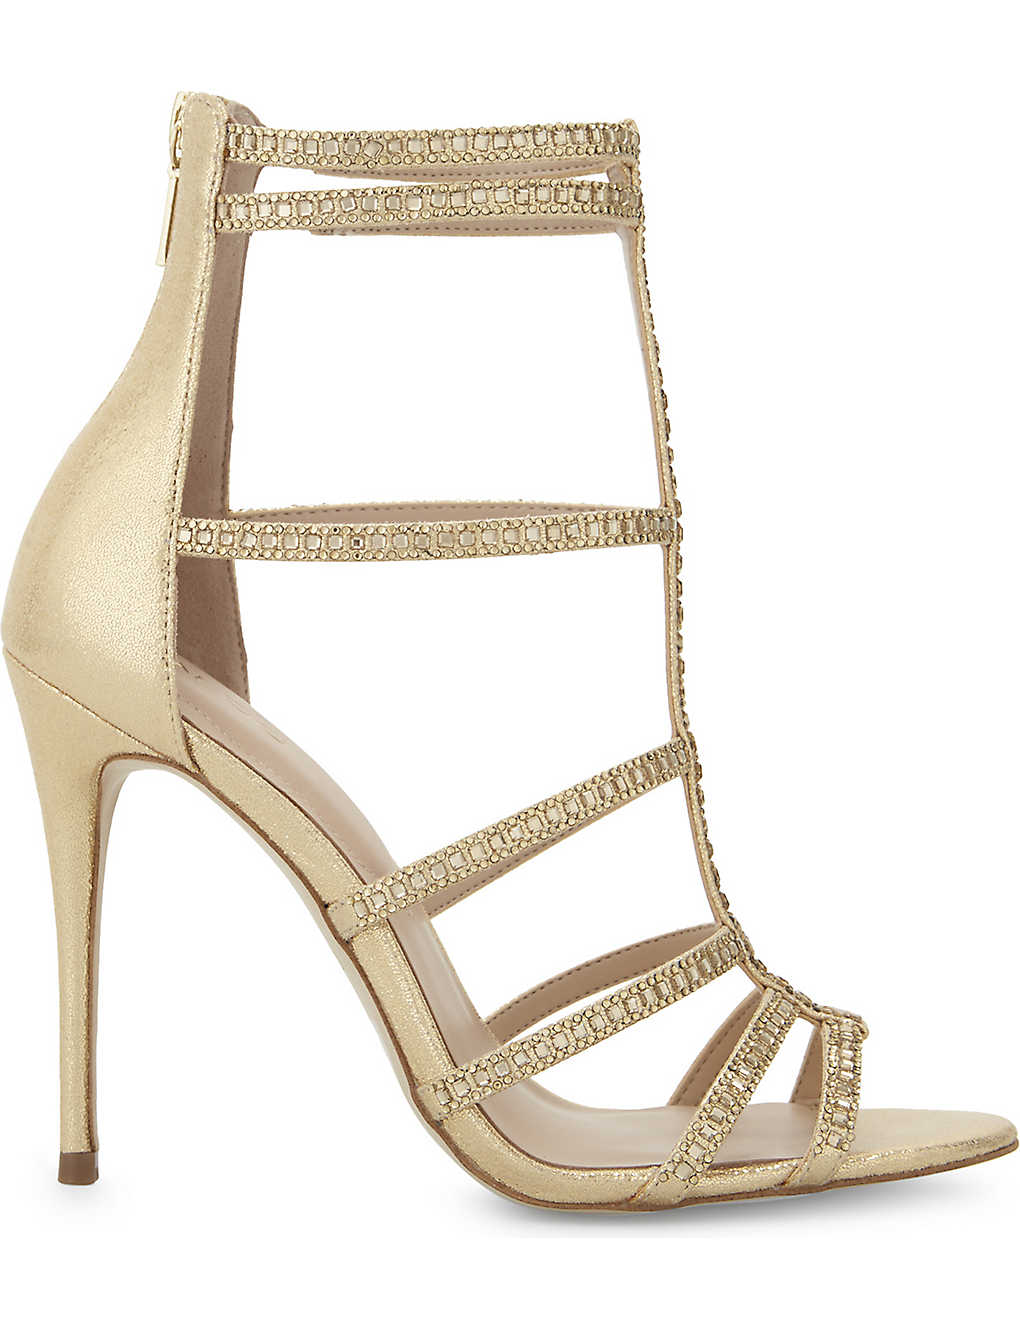 Gold ALDO Mally caged heeled sandals